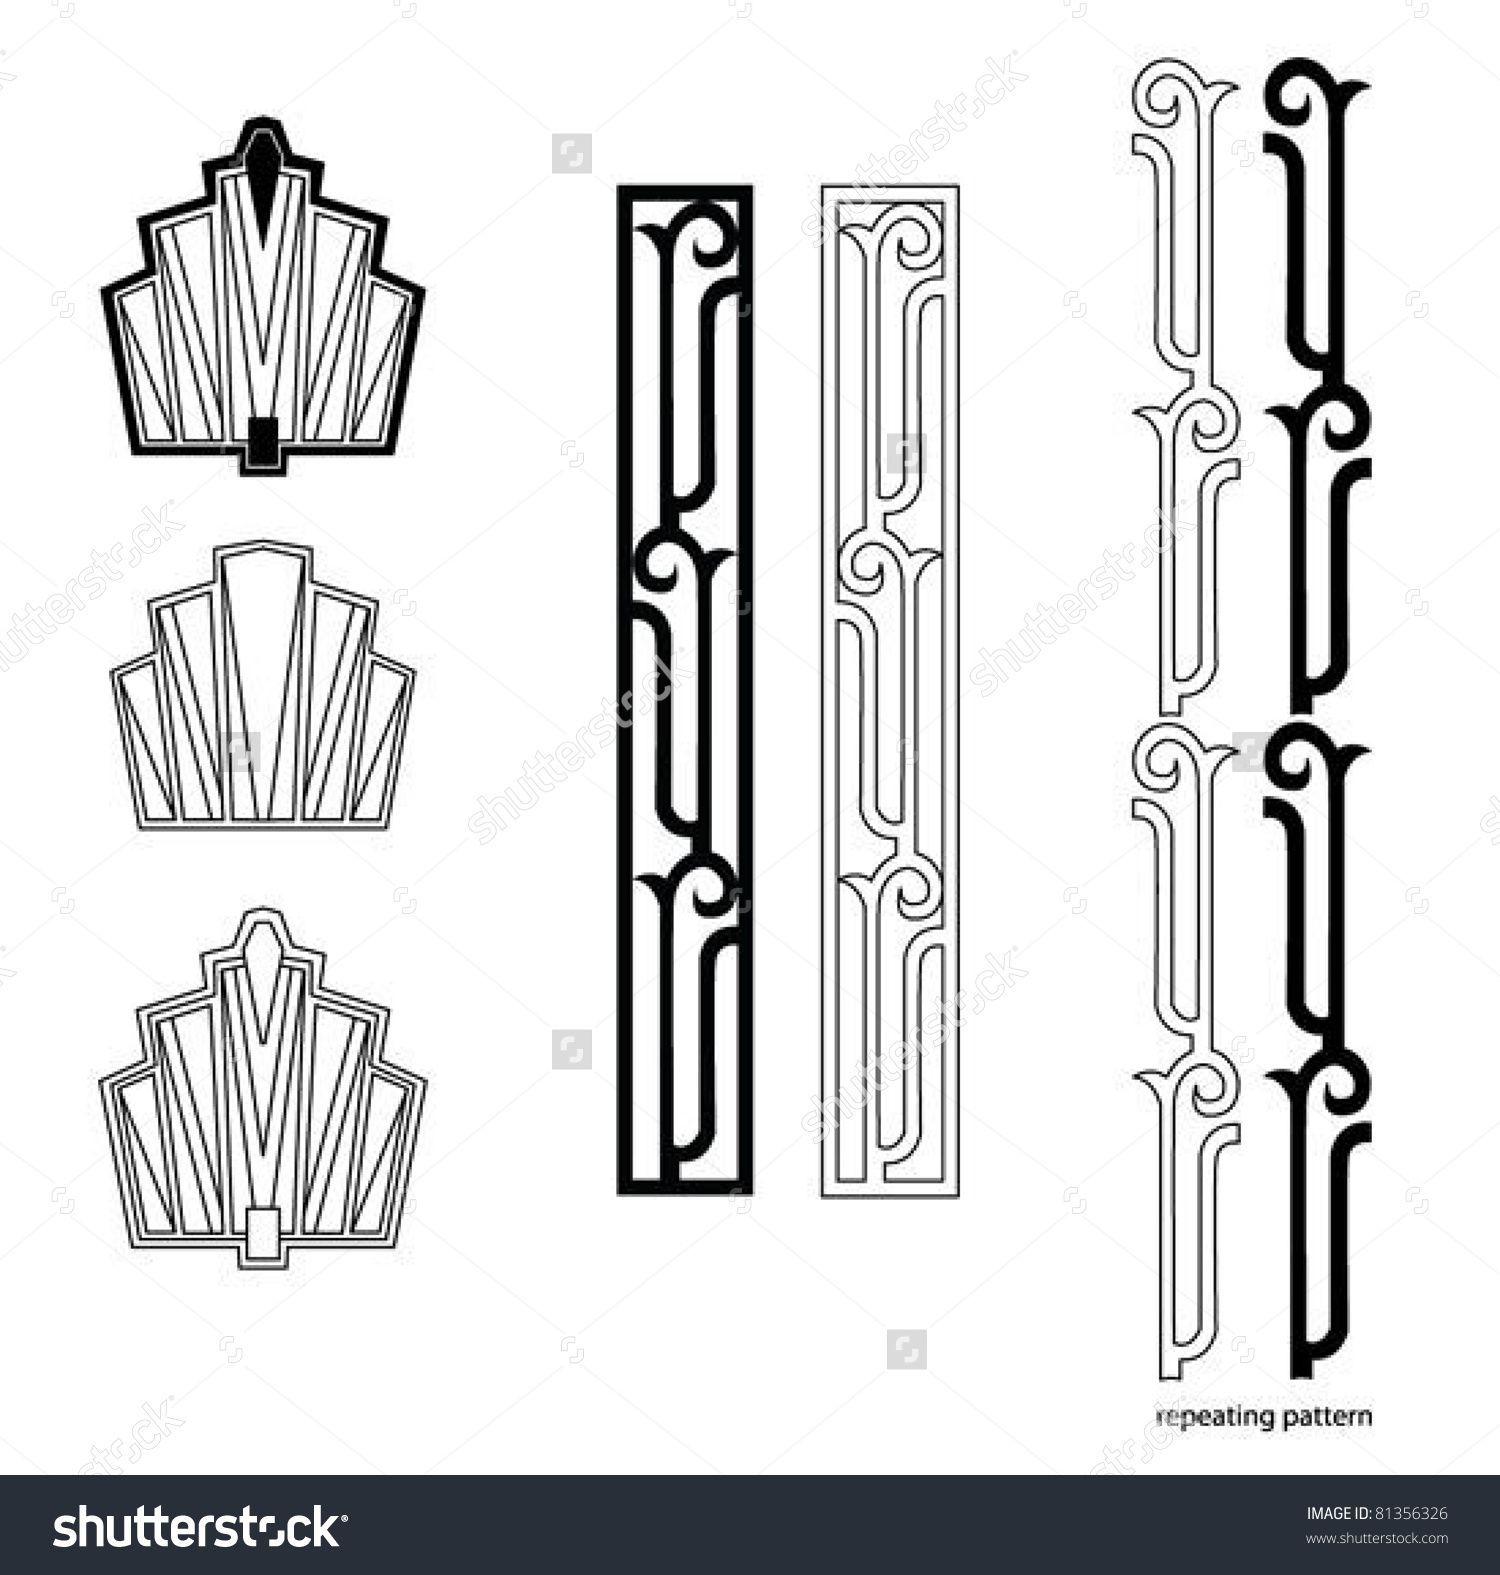 Art Deco Line Design : Art design elements the visual tools used to create both